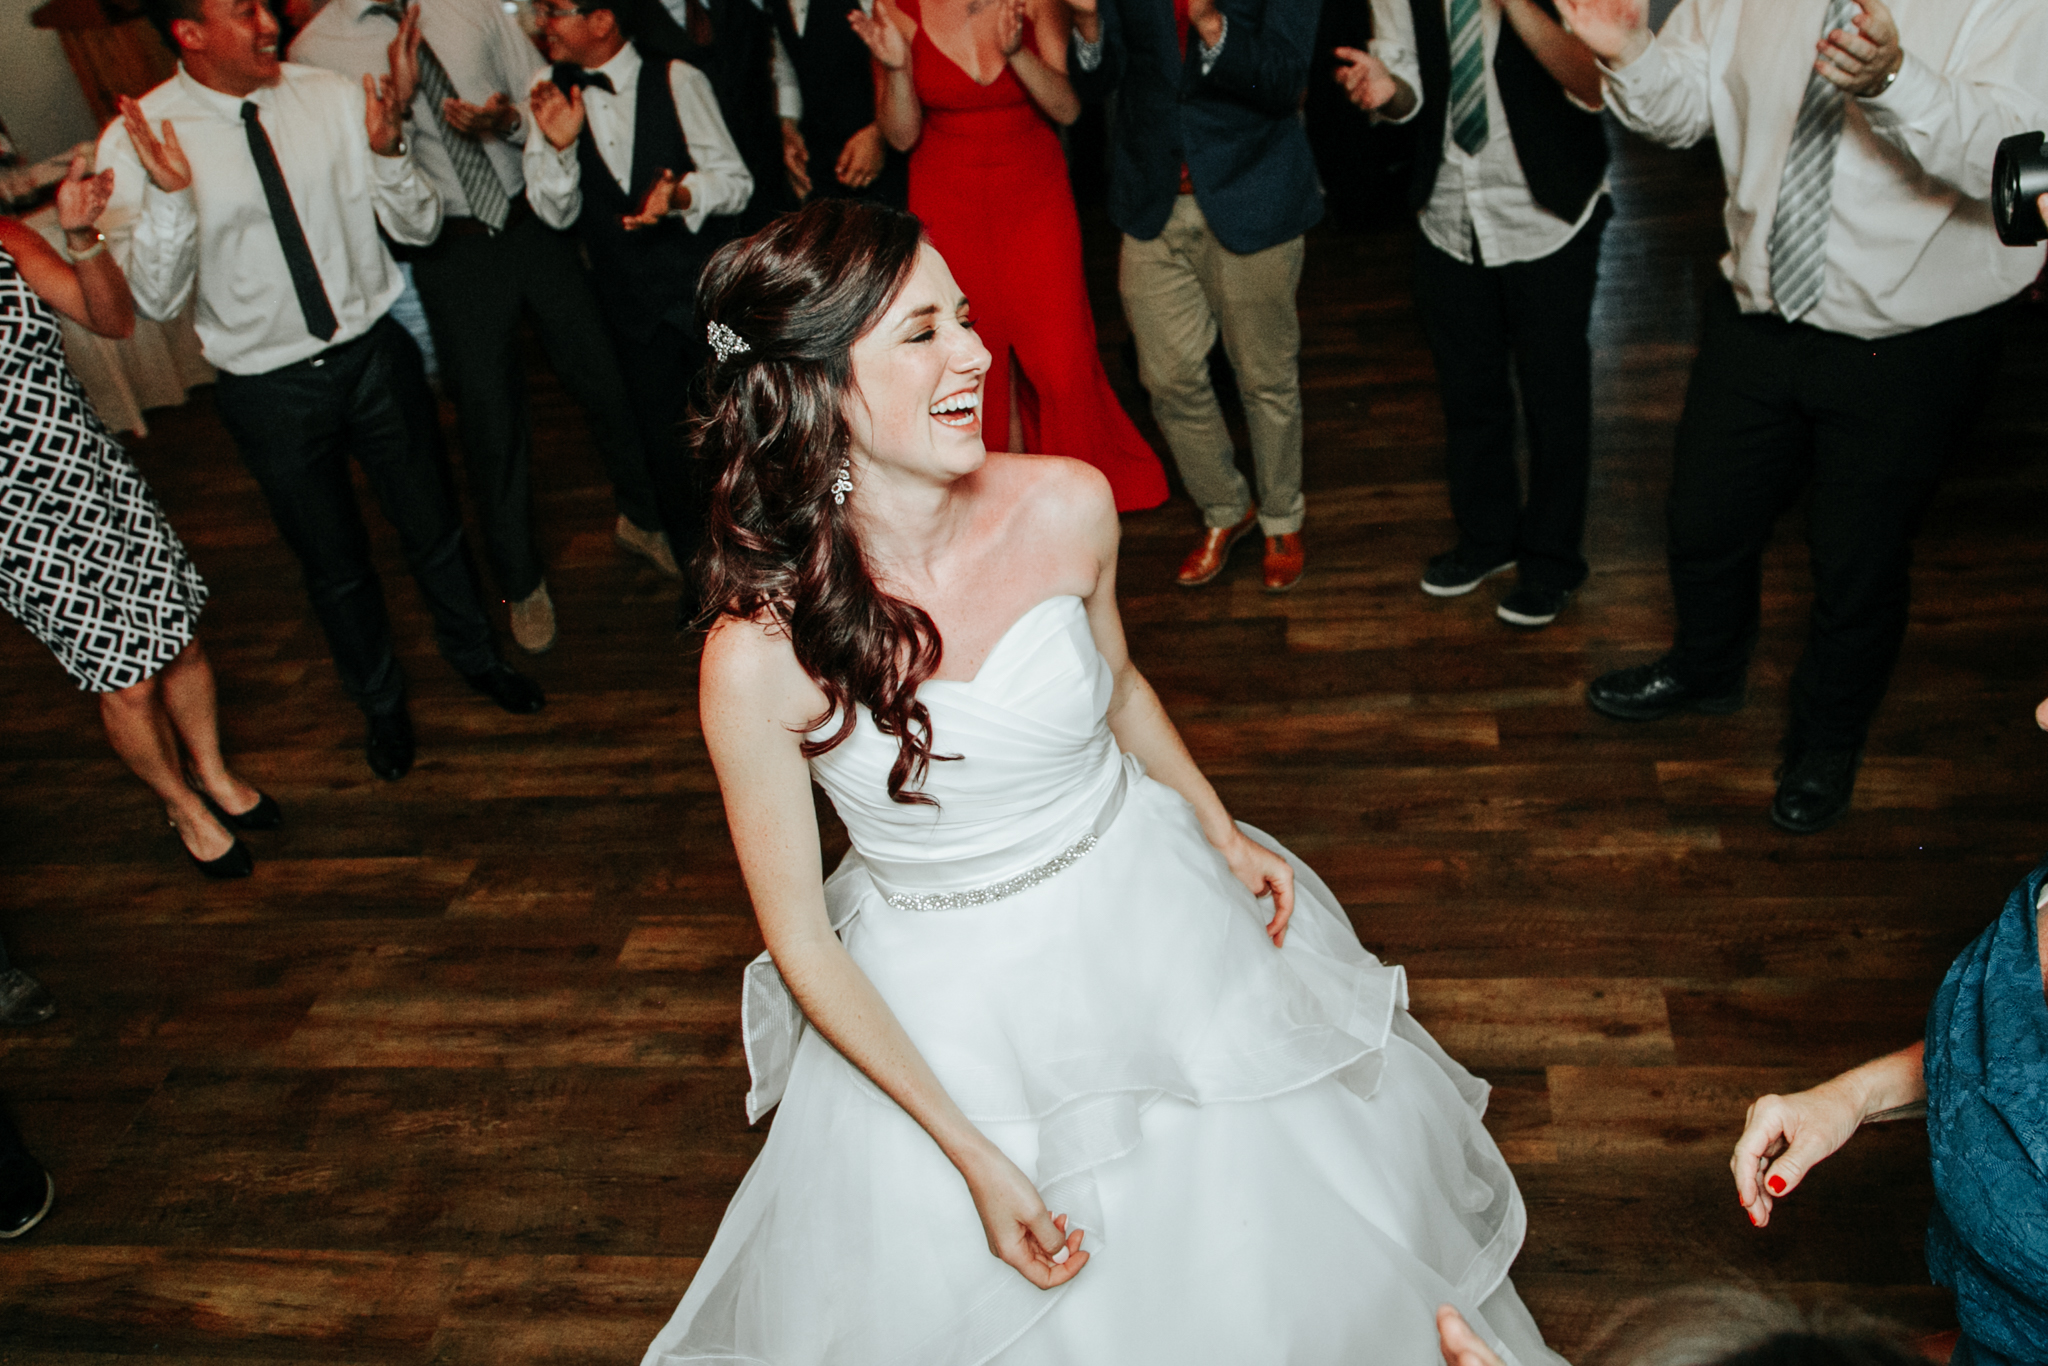 waterton-wedding-photography-love-and-be-loved-photographer-bayshore-inn-reception-image-photo-picture-39.jpg